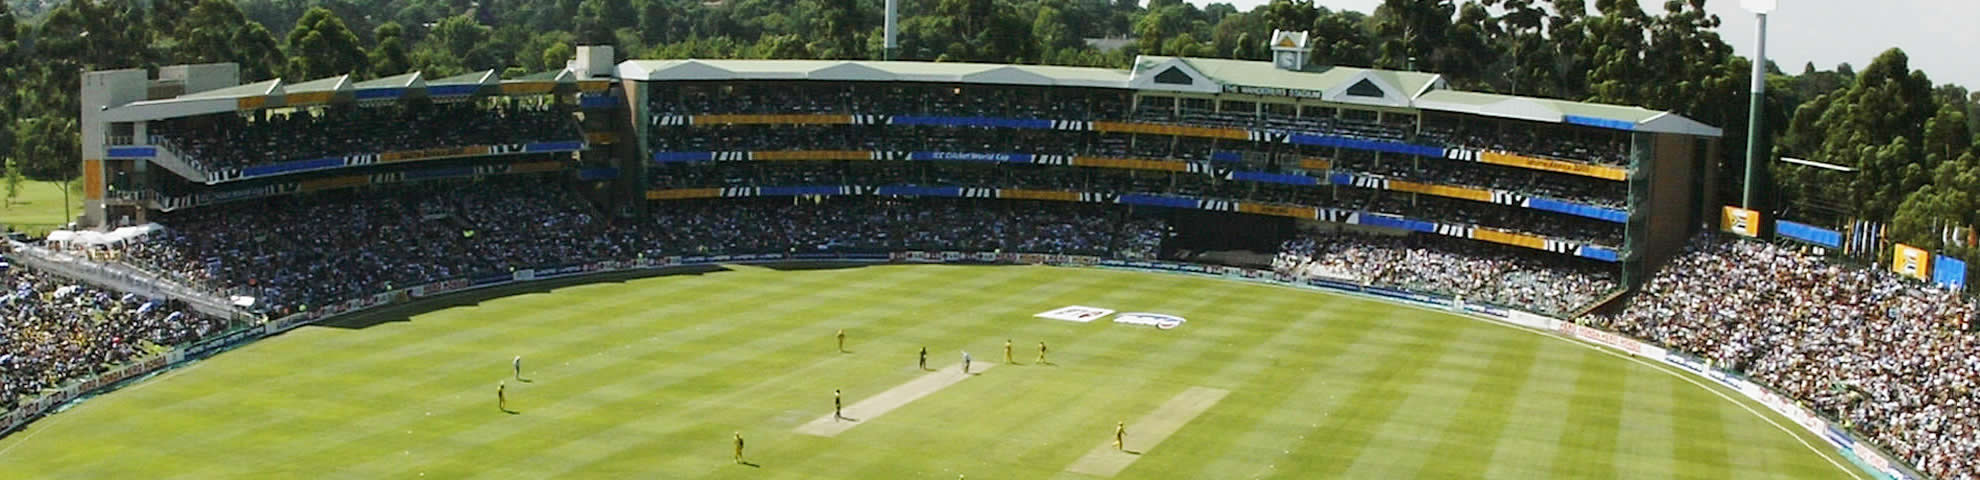 Book your cricket hospitality packages at Wanderers stadium with Drake Events.